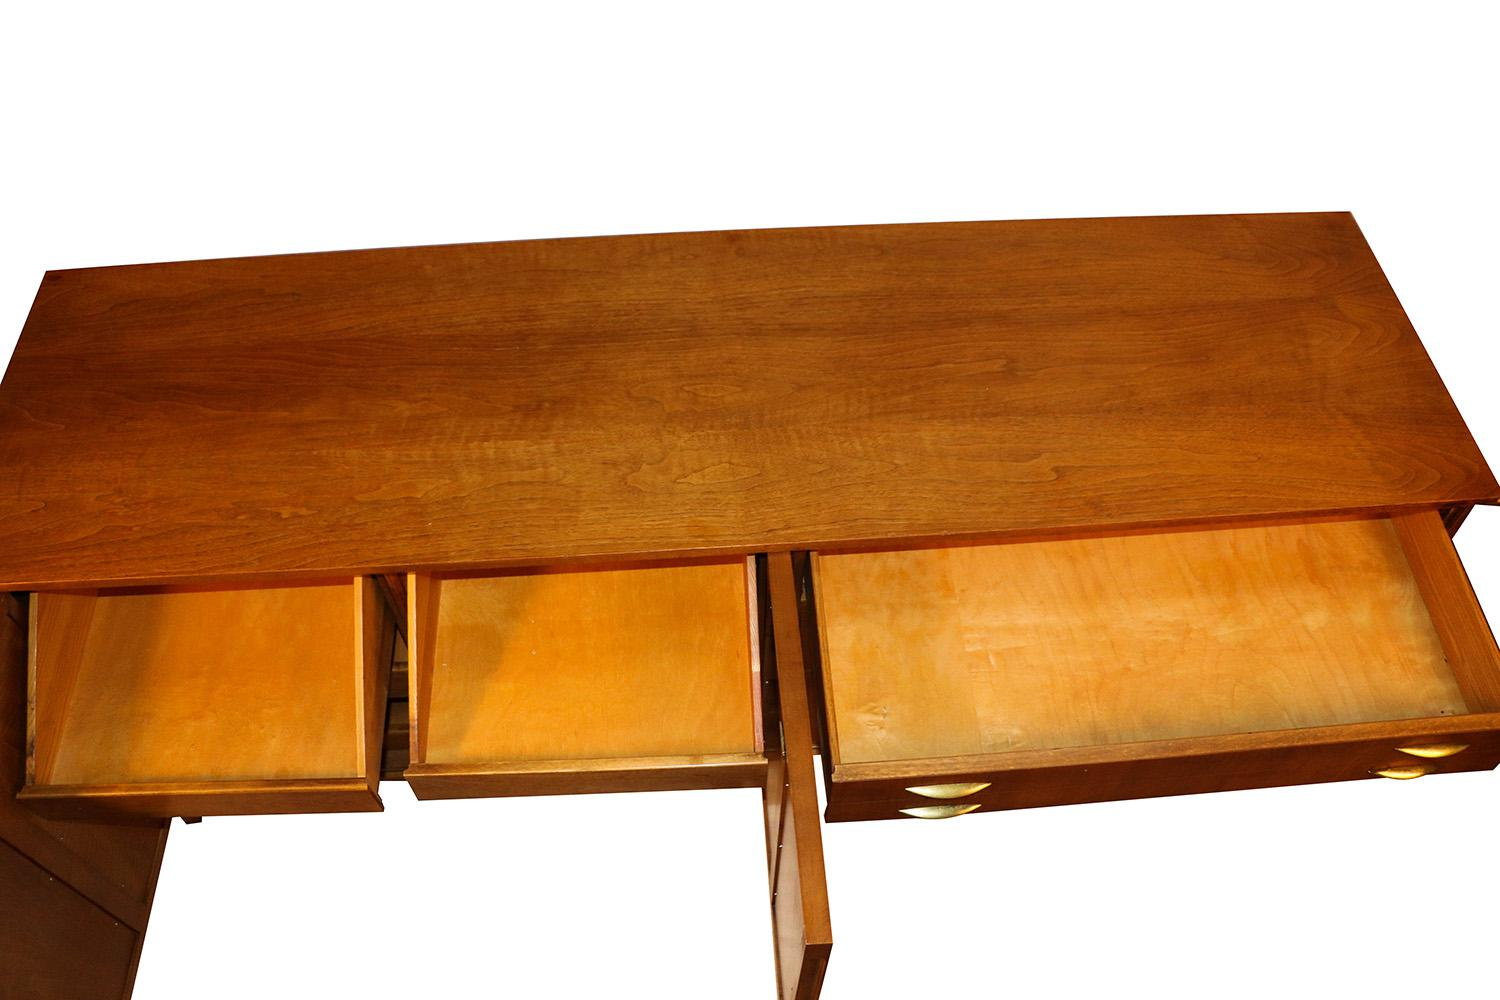 Awesome Mid Century Modern Triple Dresser West Michigan Furniture Company   Image 2  Of 9